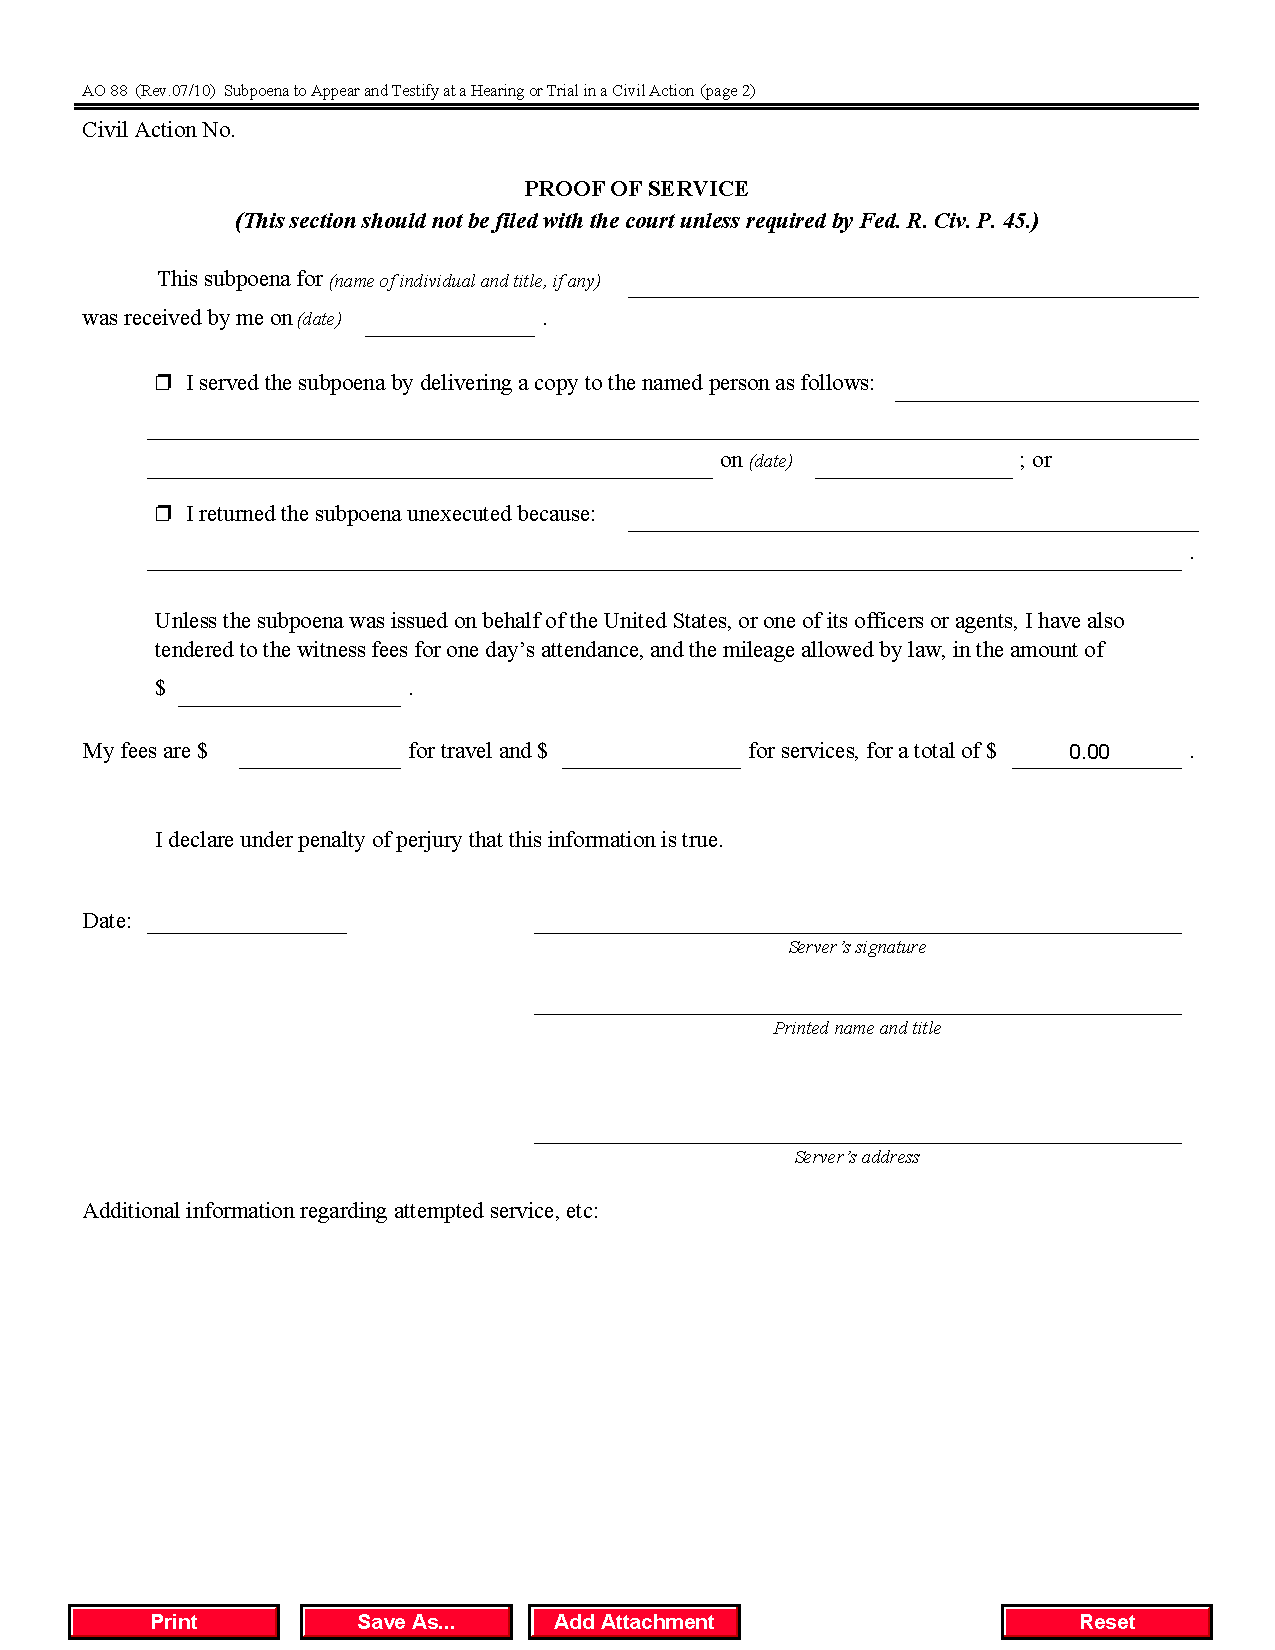 Form AO 088 Subpoena to Appear and Testify at a Hearing or Trial ...